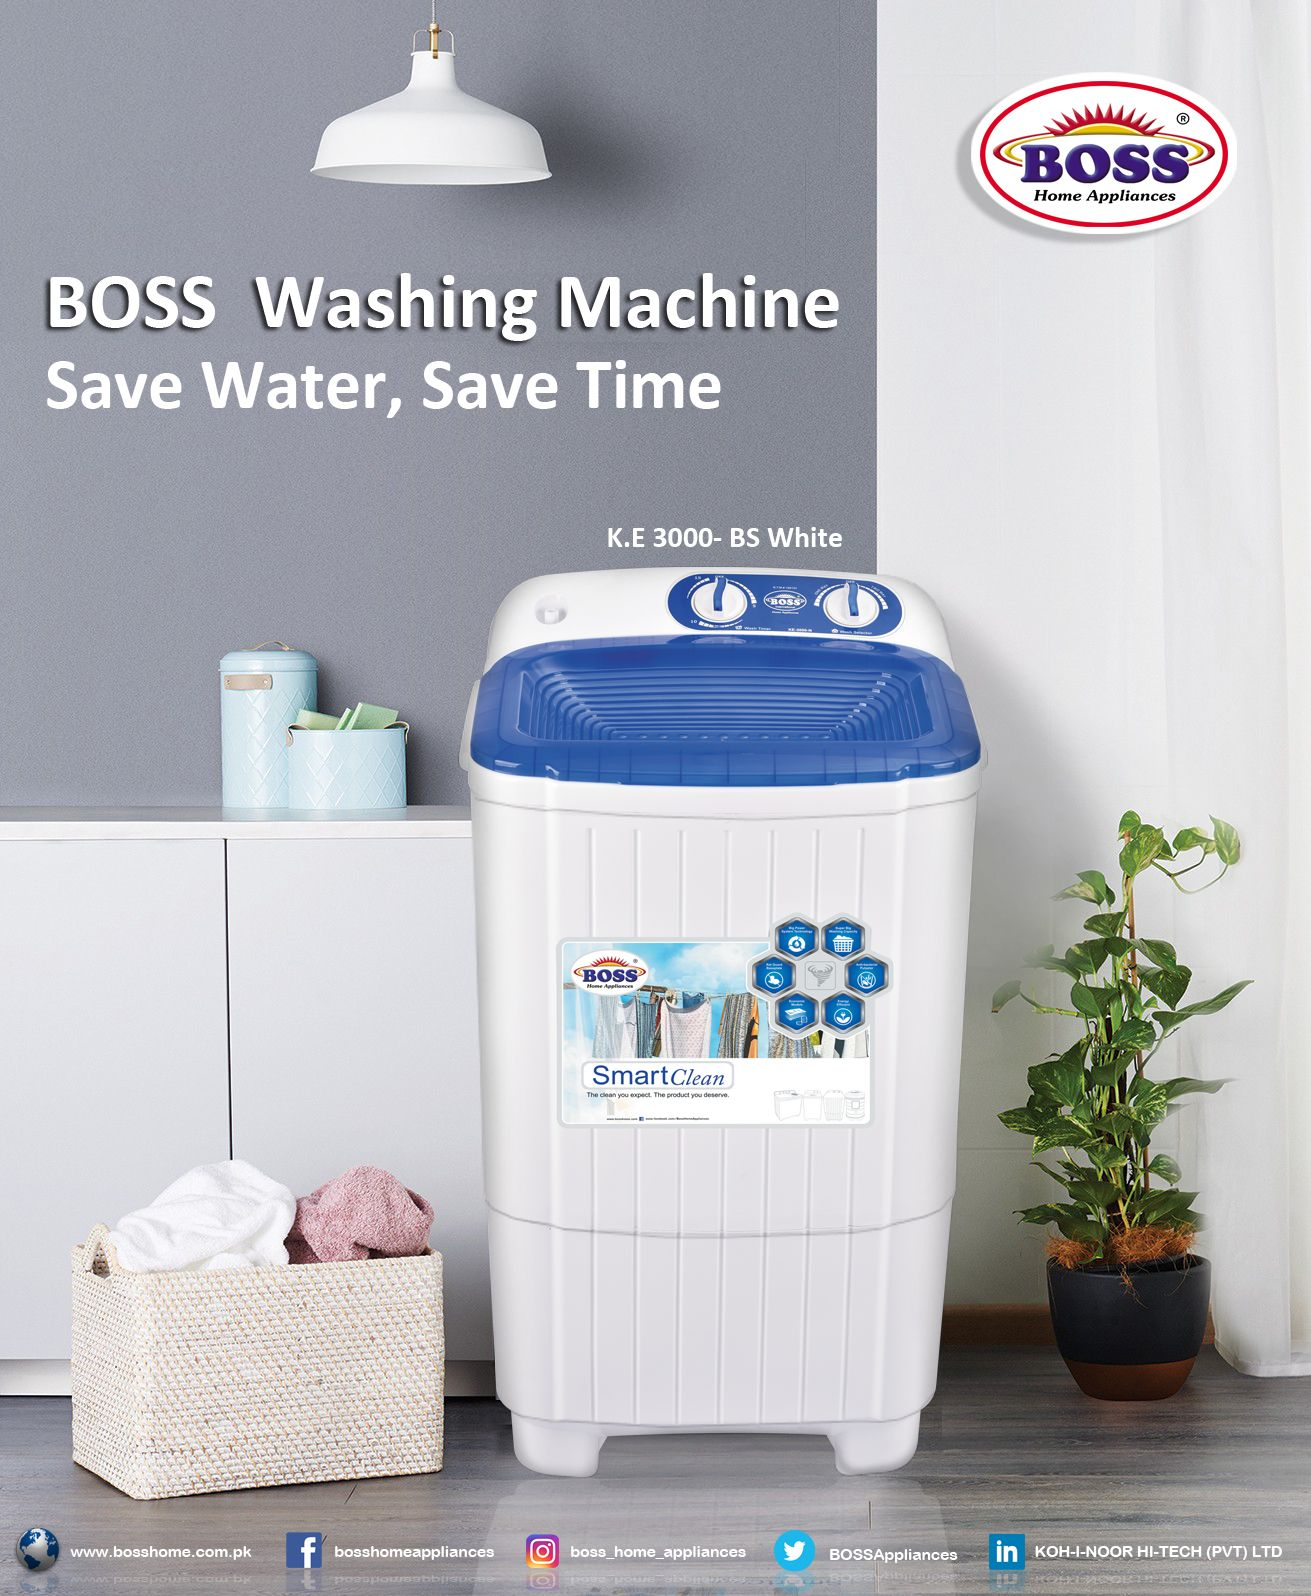 Pin By Boss Home Appliances On Products Home Appliances Washing Machine Save Water